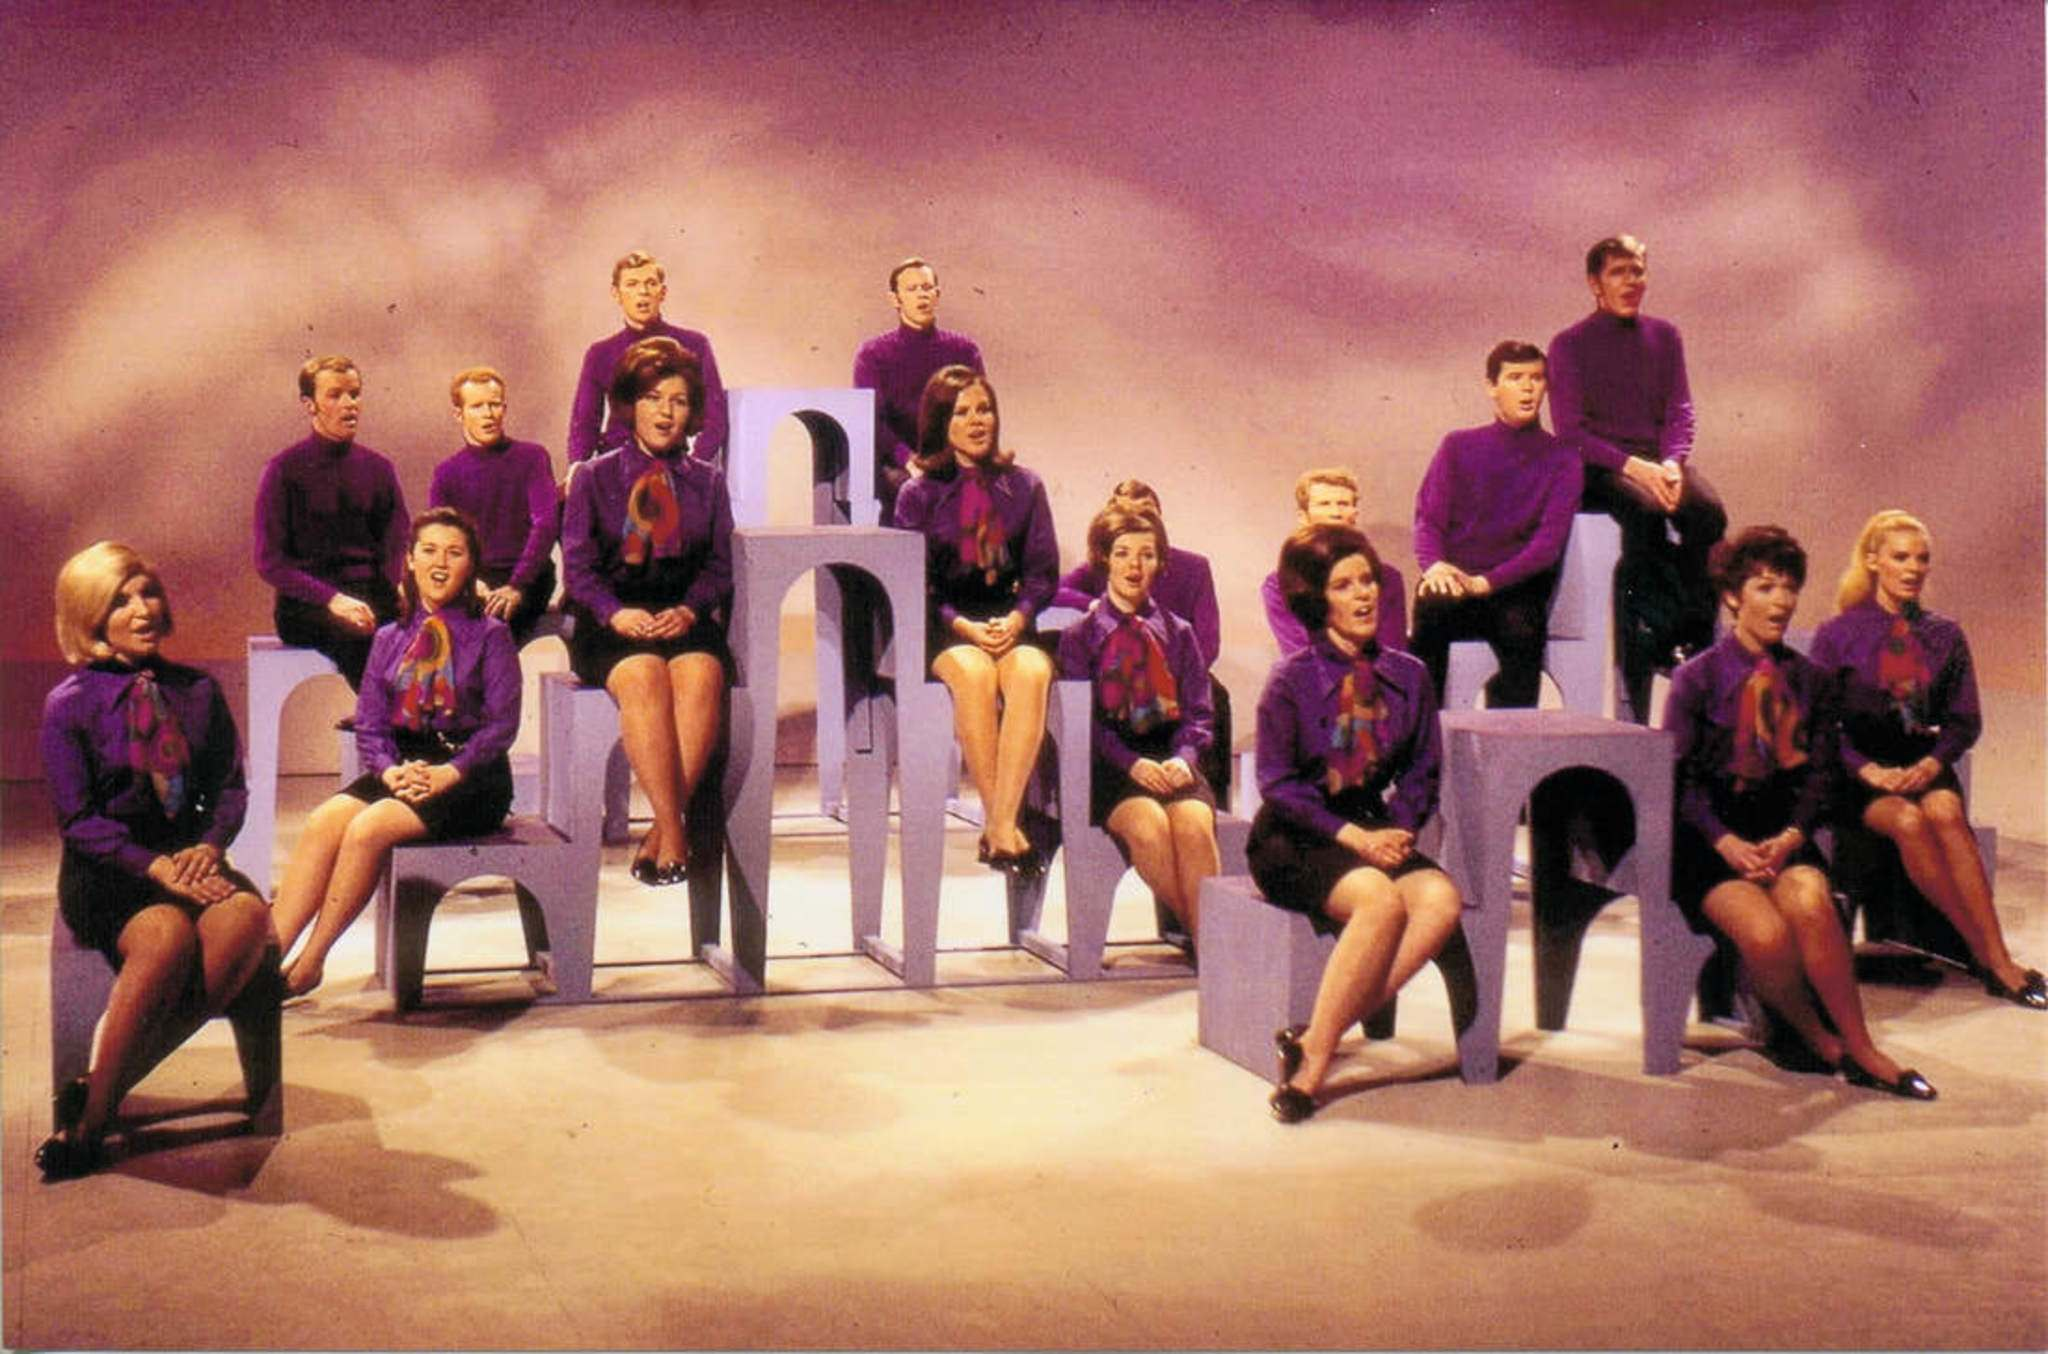 Supplied</p><p>Hymn Sing aired on CBC for 30 years before it was cancelled in May 1995, becoming the second-longest running show in the network&rsquo;s history after Front Page Challenge.</p></p>